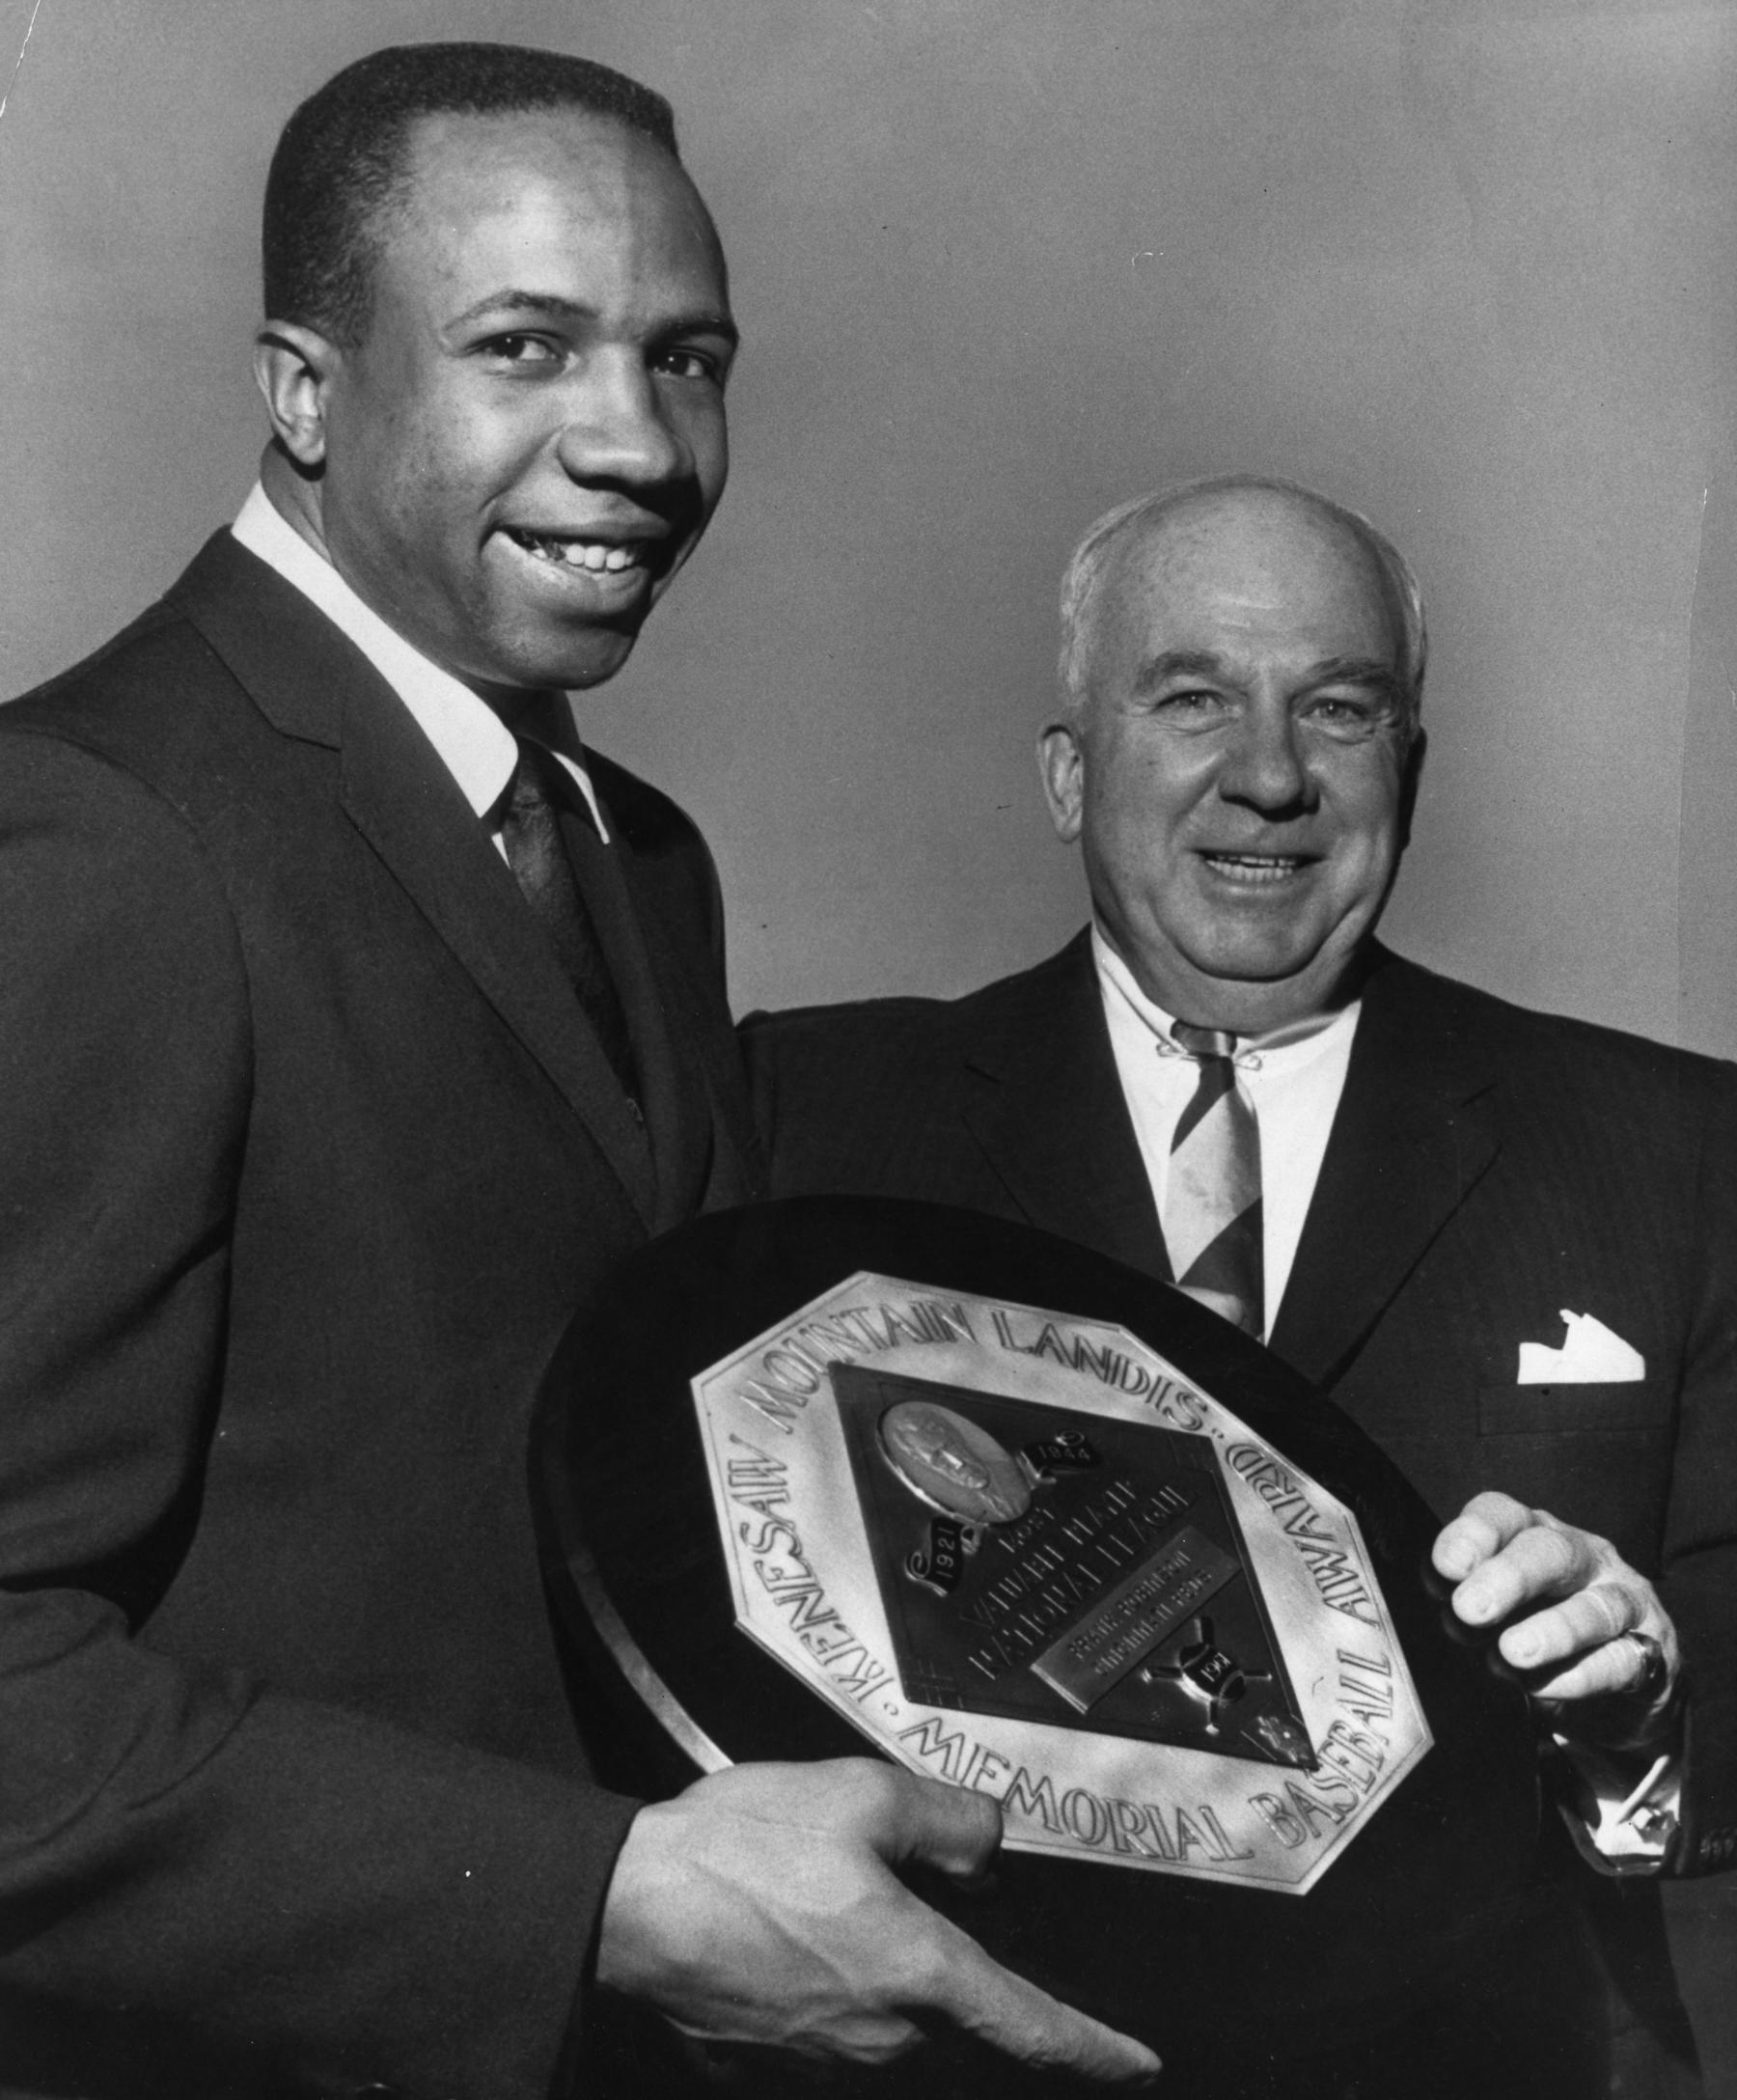 Frank Robinson won his first MVP Award in 1961, while playing for the Cincinnati Reds. (National Baseball Hall of Fame and Museum)